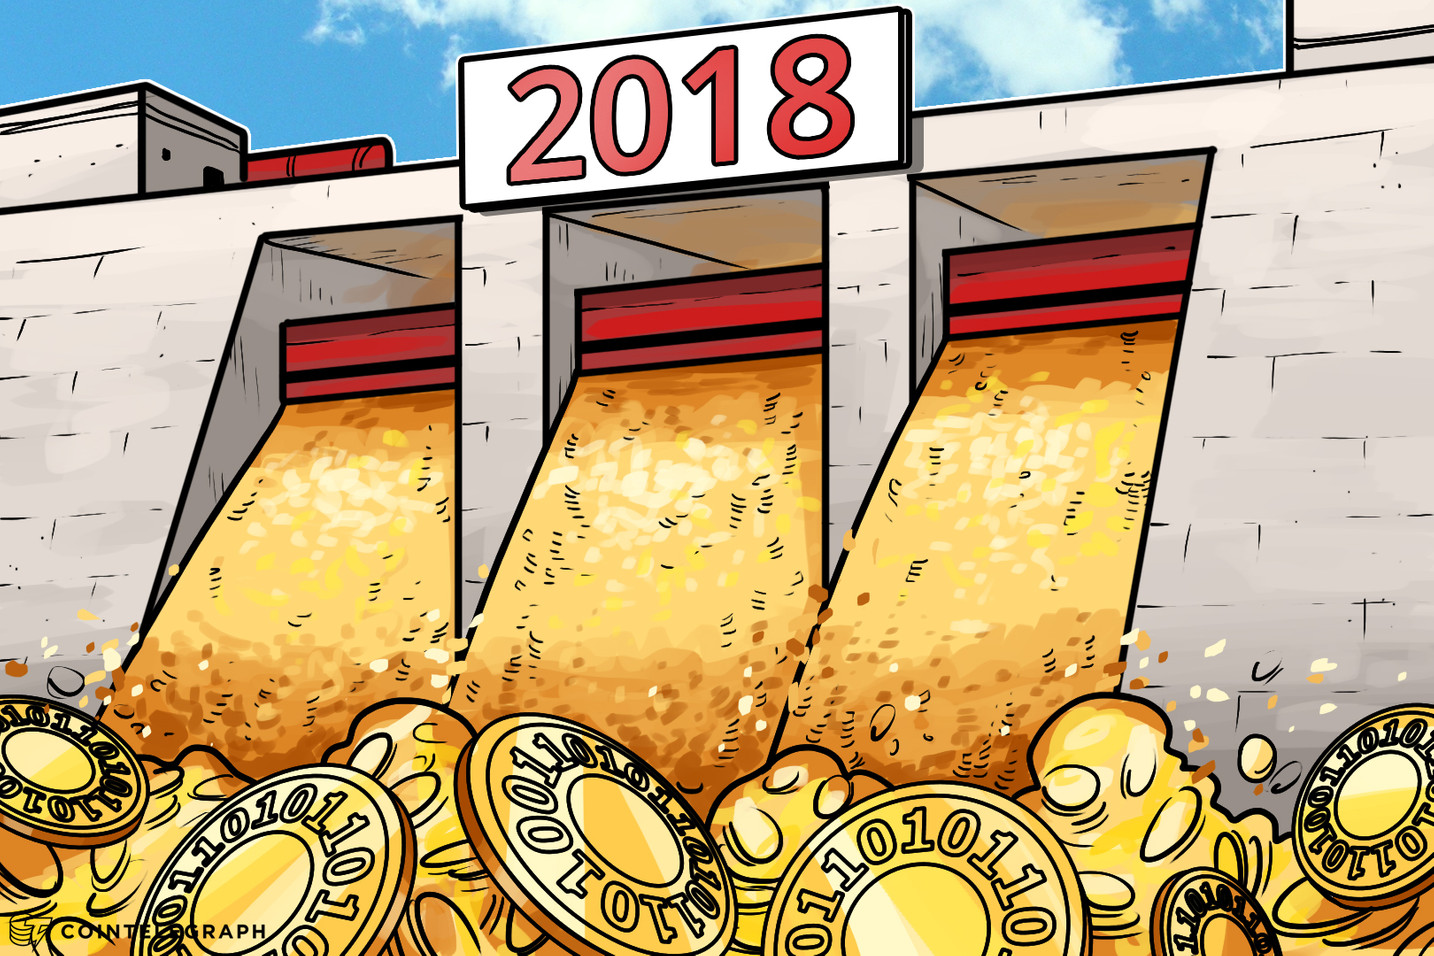 Big Investors Will Make 'All Hell Break Loose' In Crypto In 2018, Says Abra CEO